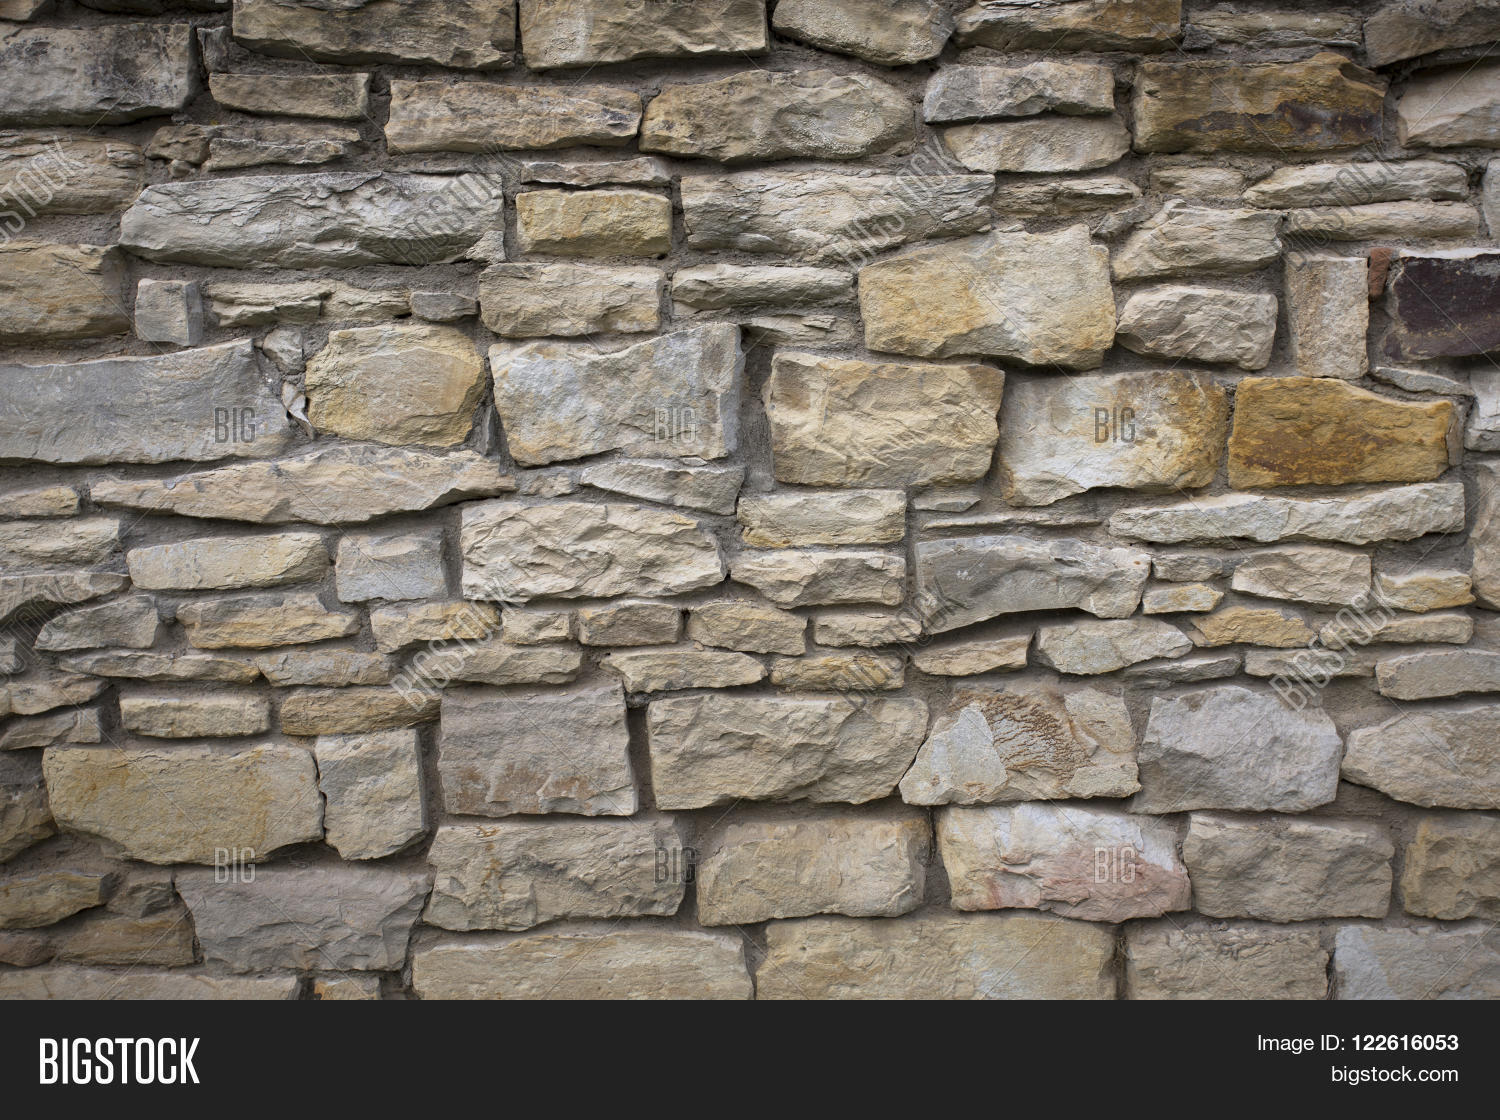 Stone old wall texture  Old rock blocks in old medieval brick  Exterior  historical country. Stone old wall texture  Old rock blocks in old medieval brick